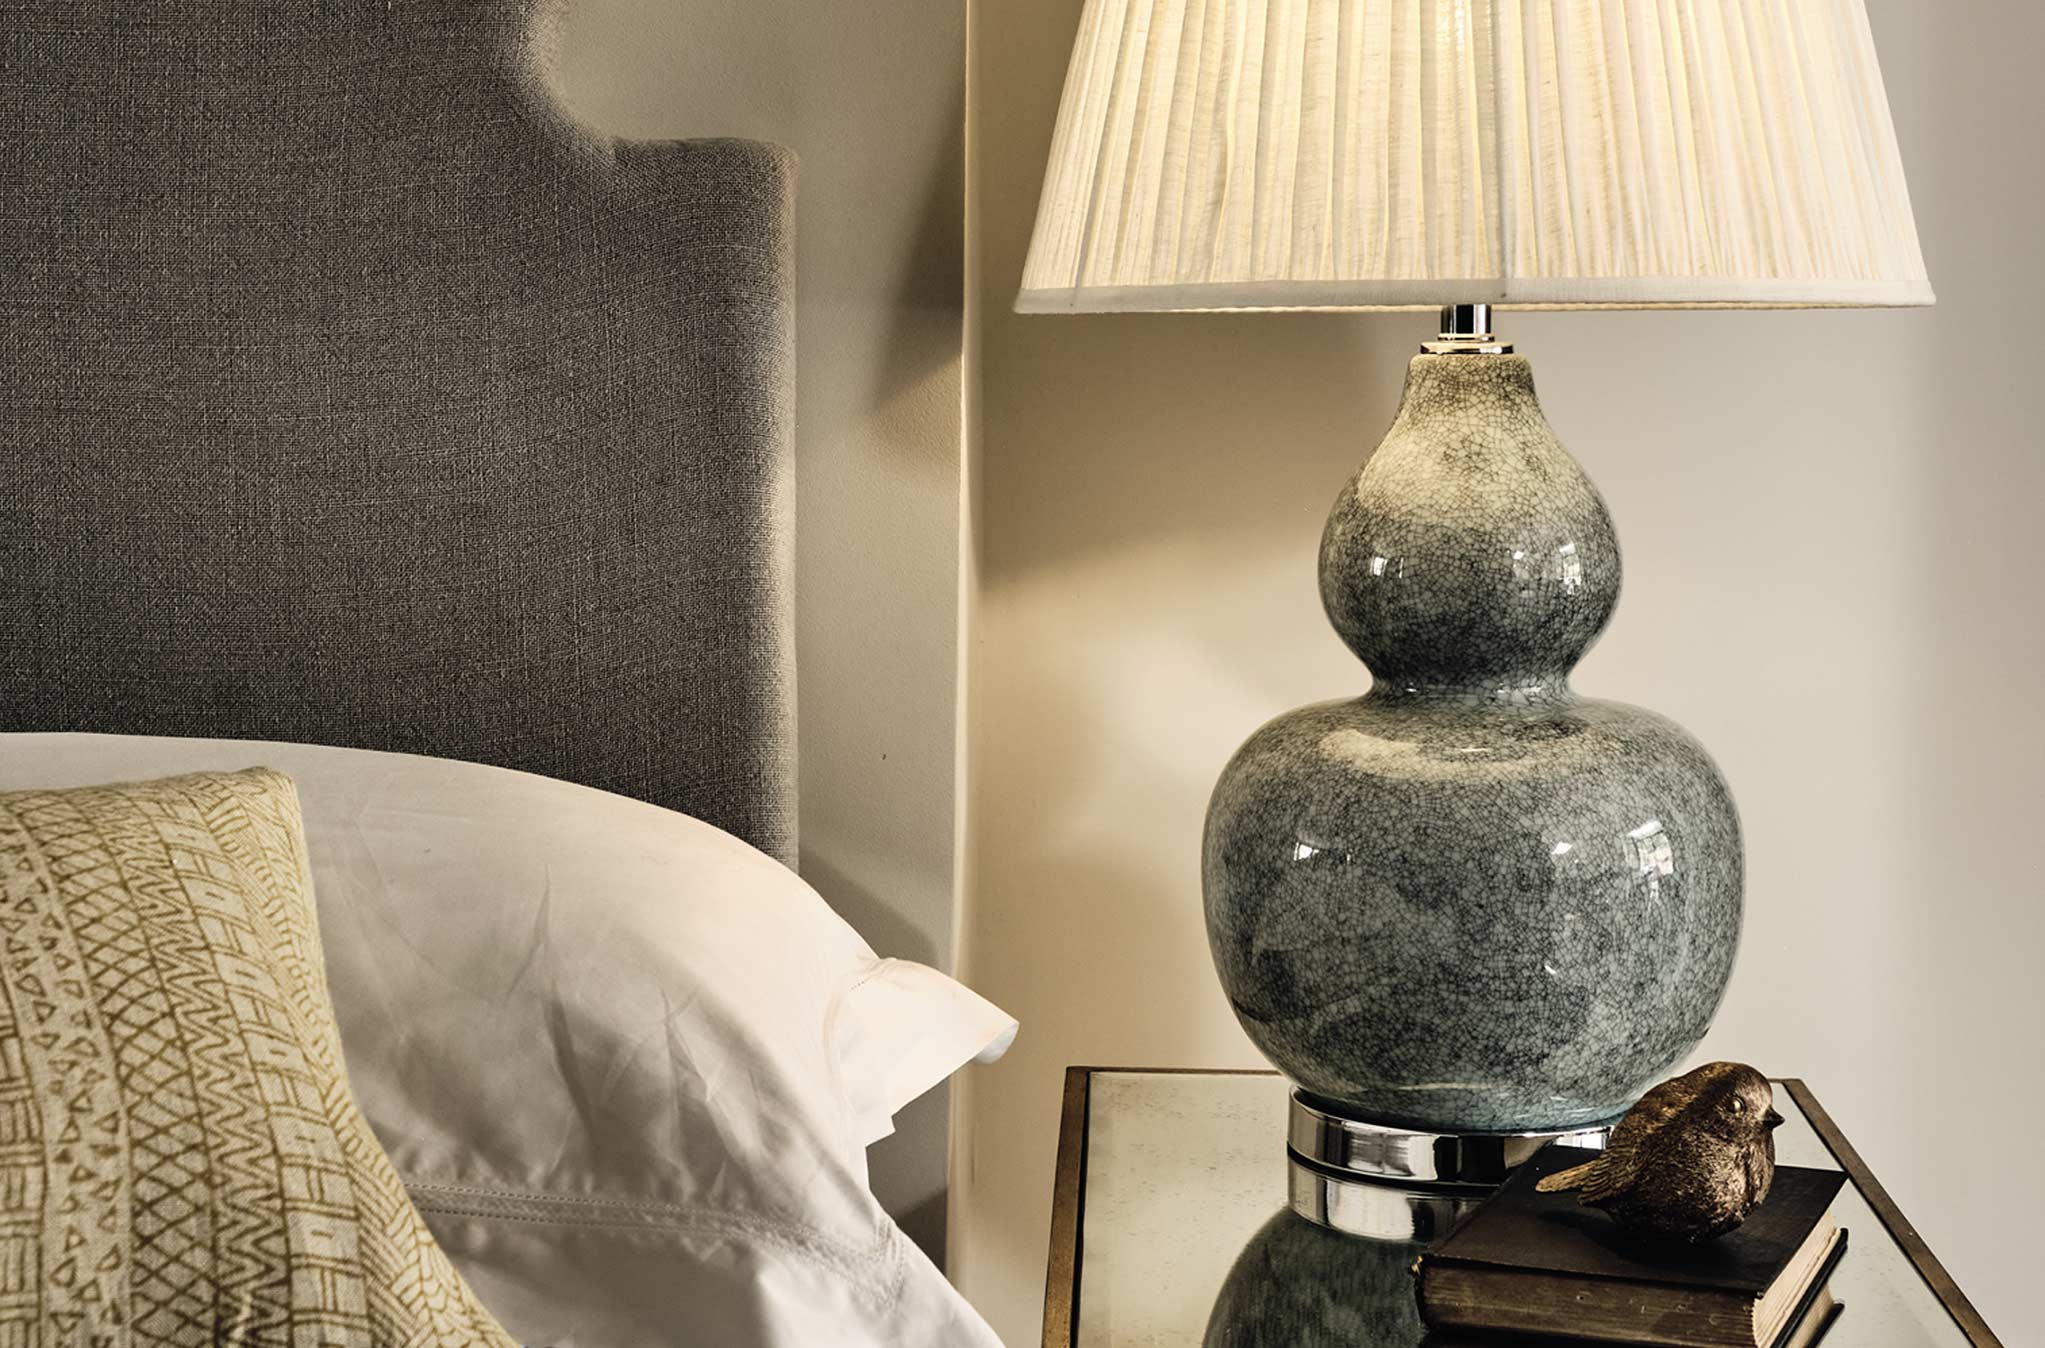 A ceramic gray table lamp with a white pleated shade, on top of a glass sidetable